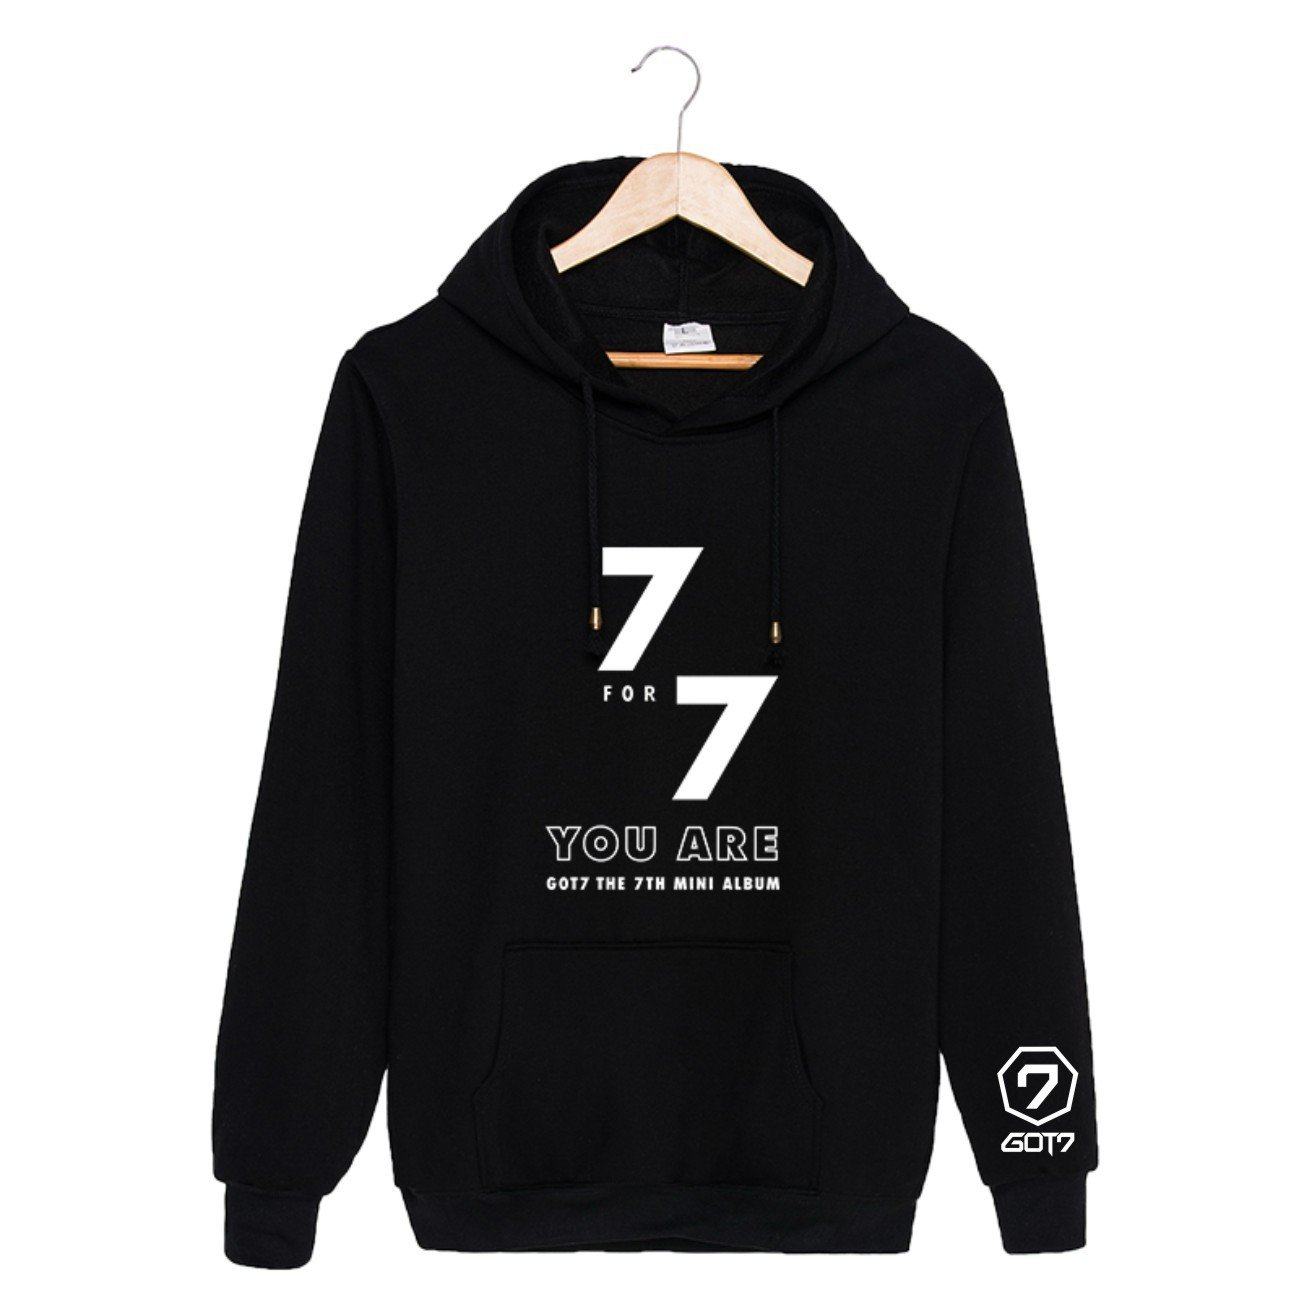 Lifestar Kpop GOT7 Hoodie Sweatshirt 7FOR7 You are Sweater Pullover